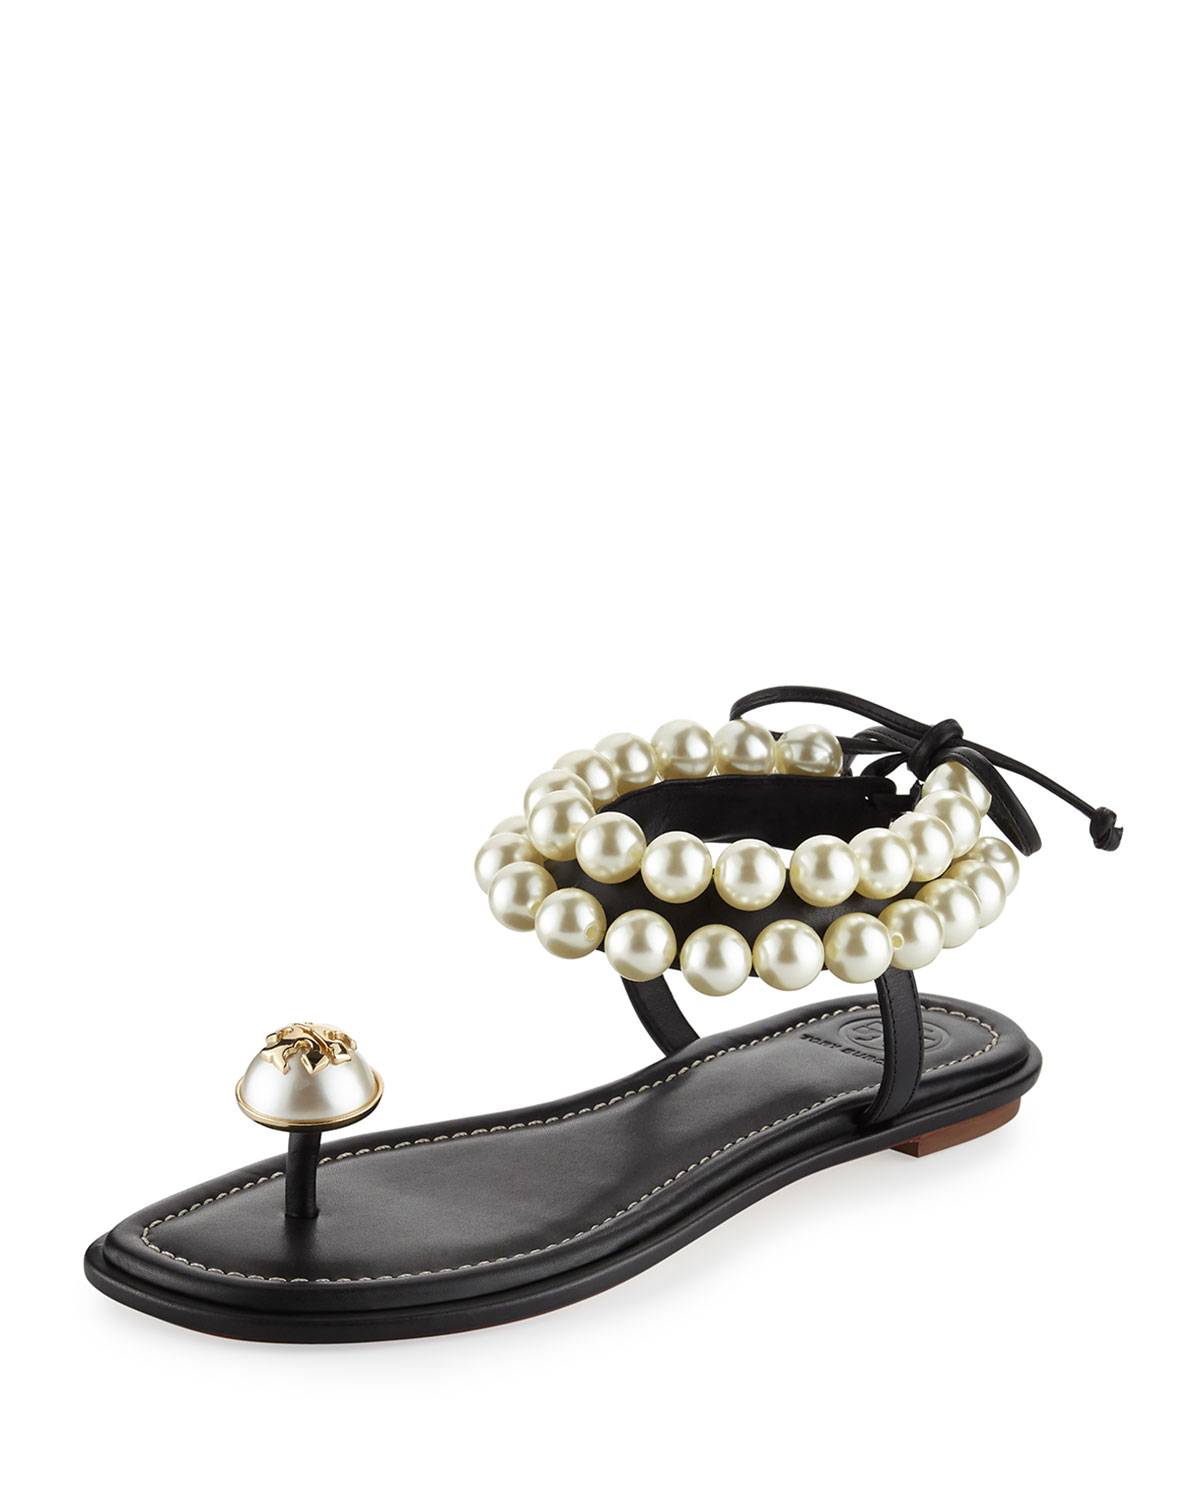 Tory Burch Melody Pearly Ankle-Wrap Flat Sandal